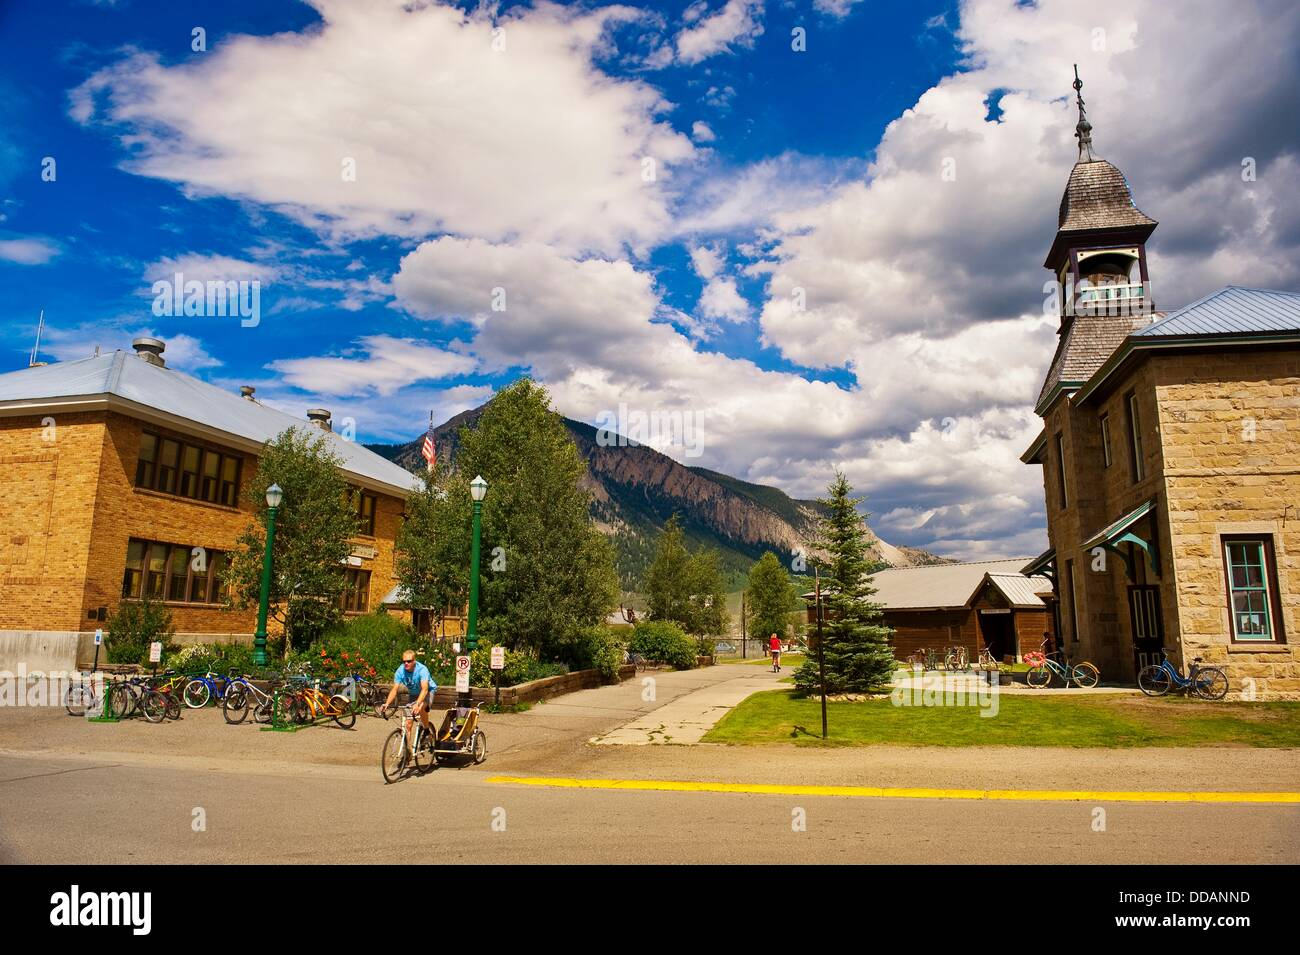 Old Rock Community Library, Crested Butte, Colorado USA - Stock Image